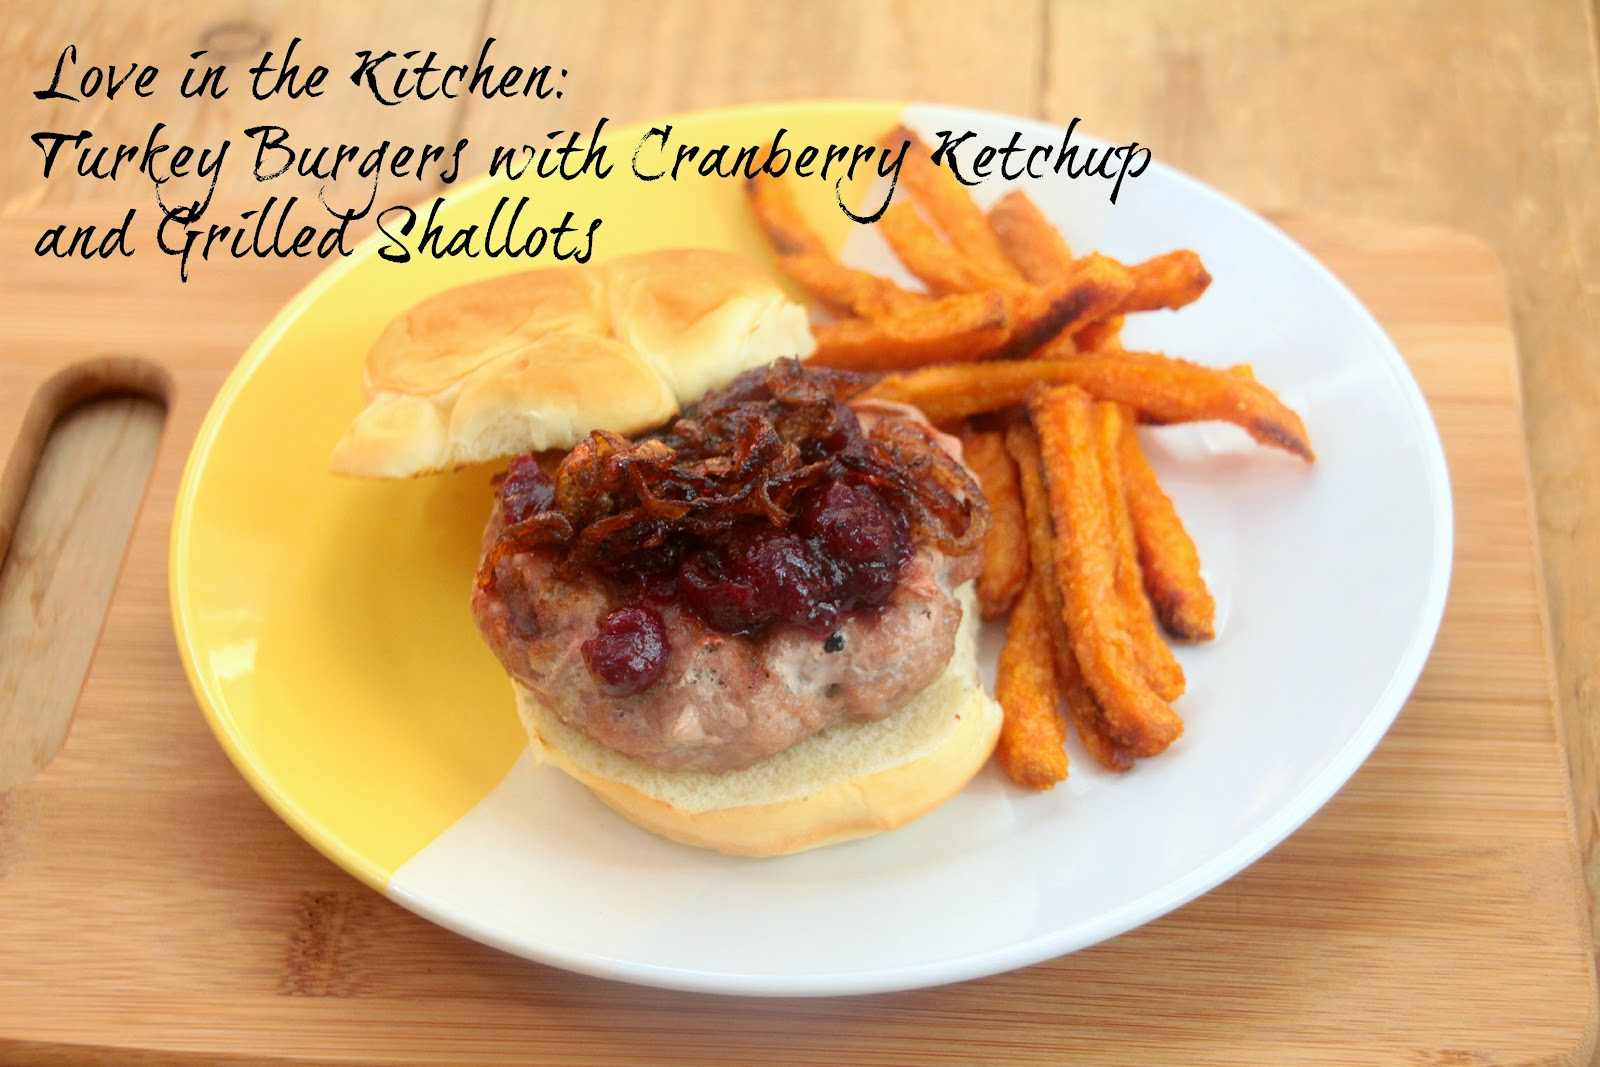 Mozzarella Stuffed Elk Burgers with Blackberry Ketchup recipes